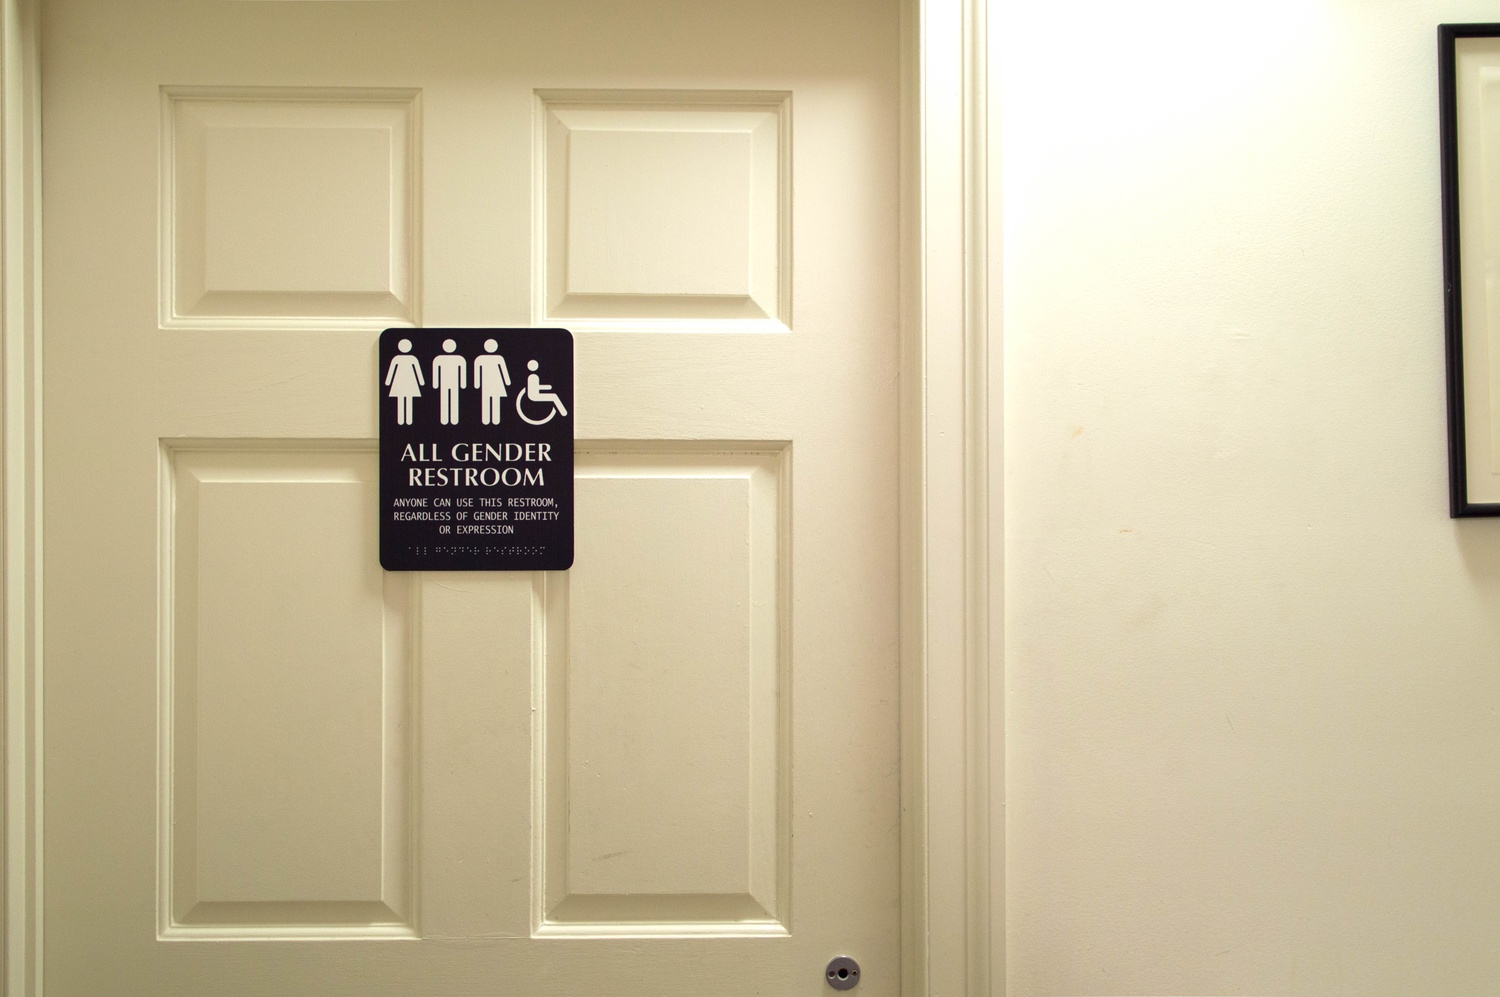 Adams House already includes a gender neutral restroom.